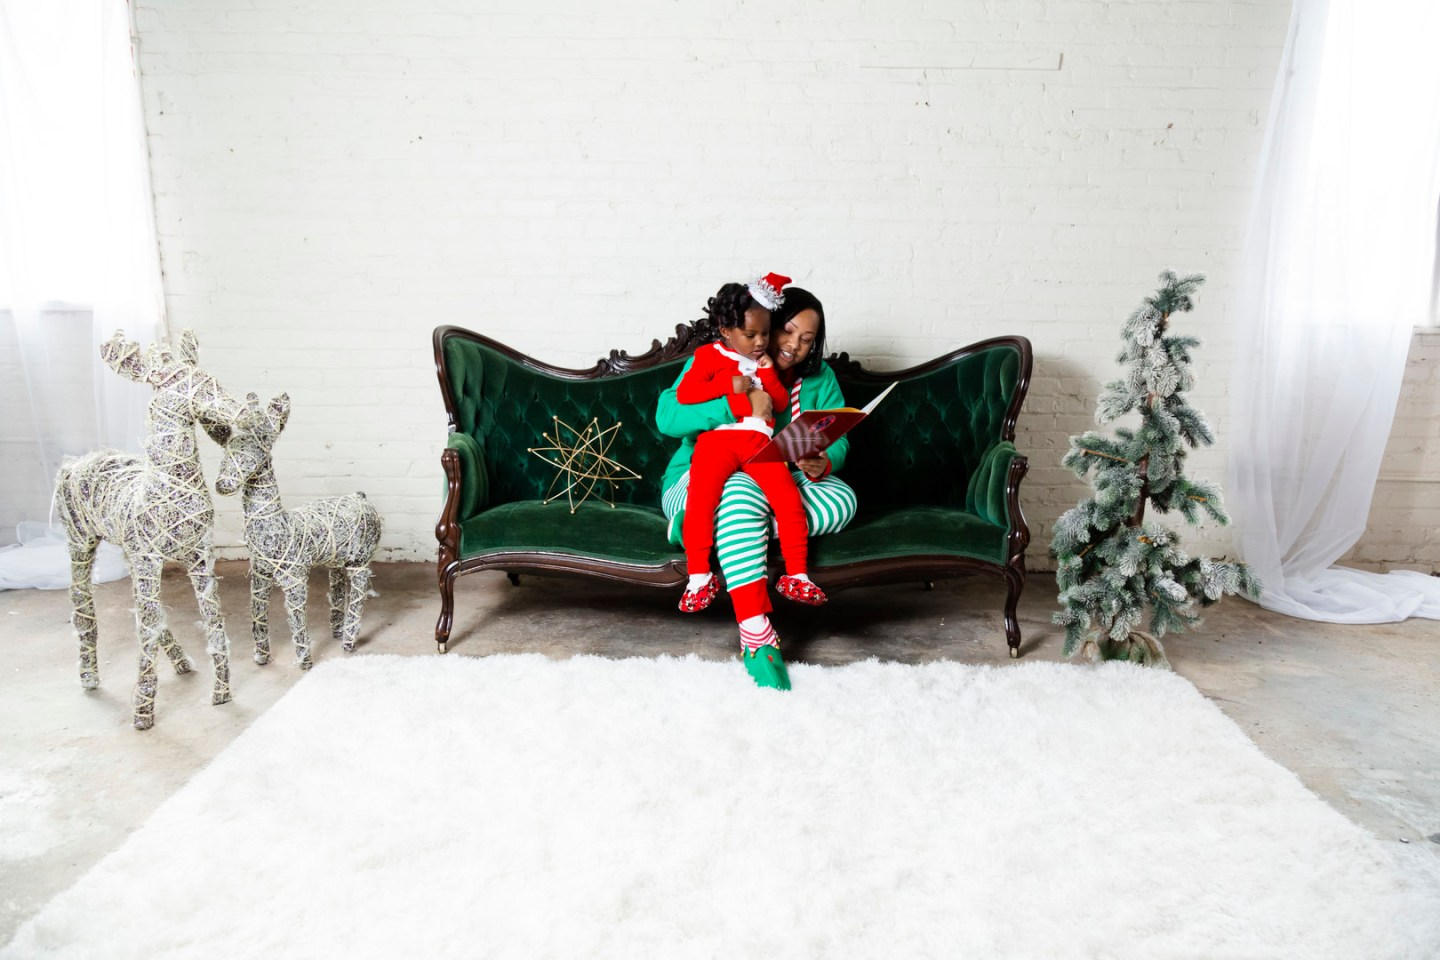 qeb83c379tih4nhwgt54_big Mommy & Me Christmas PJ Session in Greensboro, NC